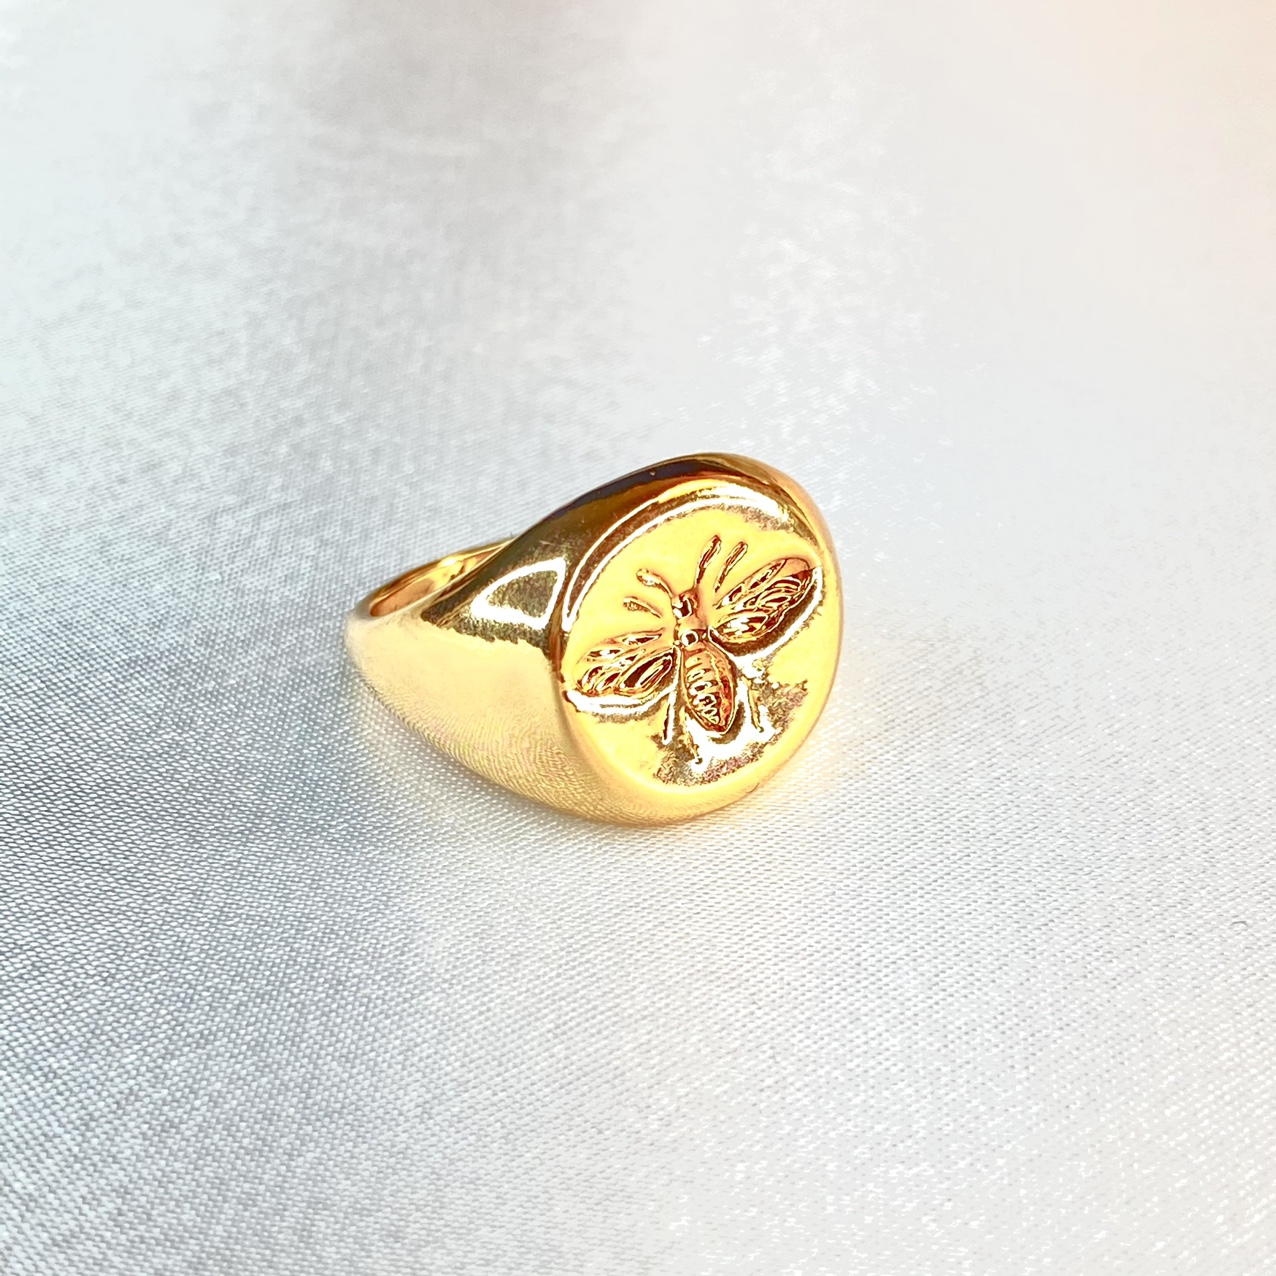 Product Image 1 - Gold Plated Bee Engraved Ring  ꕥ